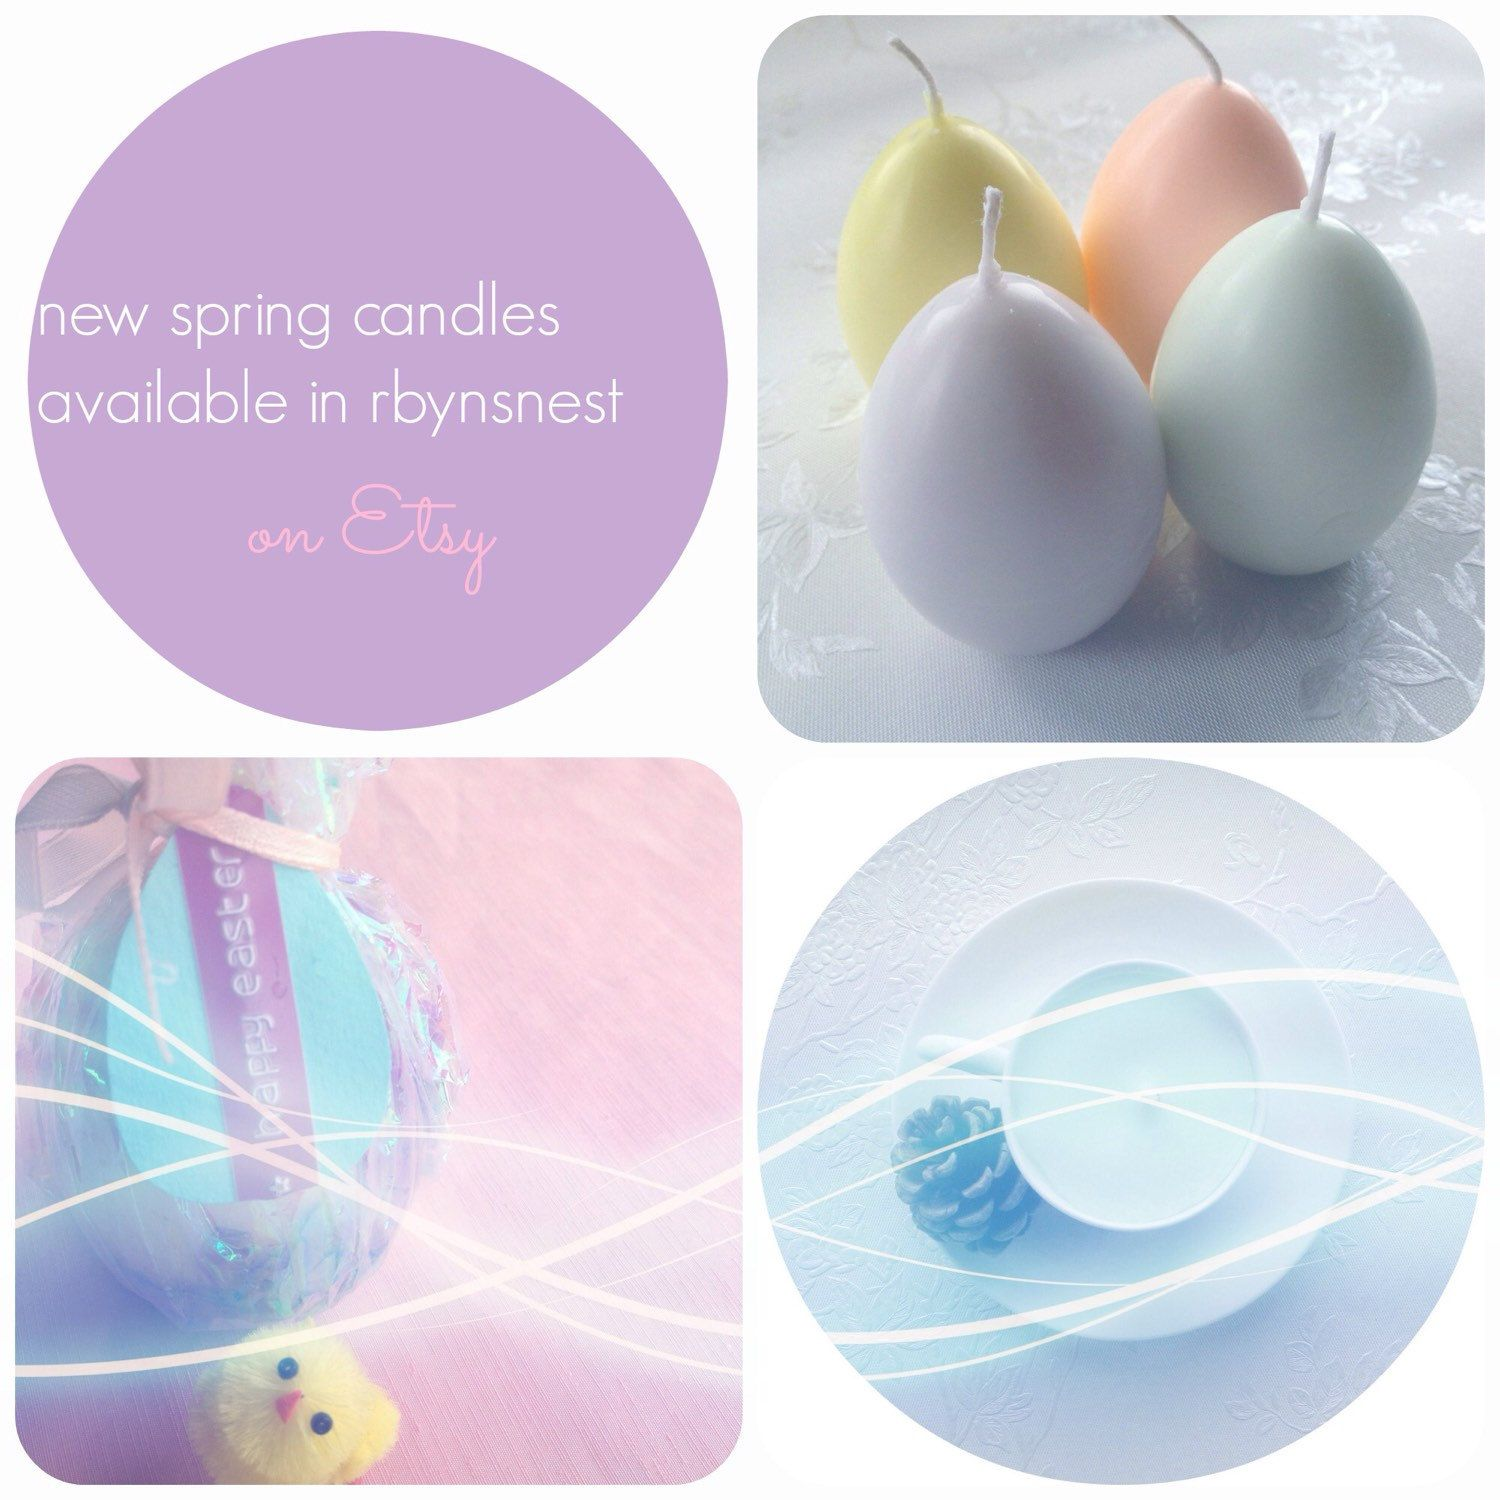 ..it is smelling so yummy in the studio just now with all these new candles hatching! Check out my new pastel and floral Spring range ✨